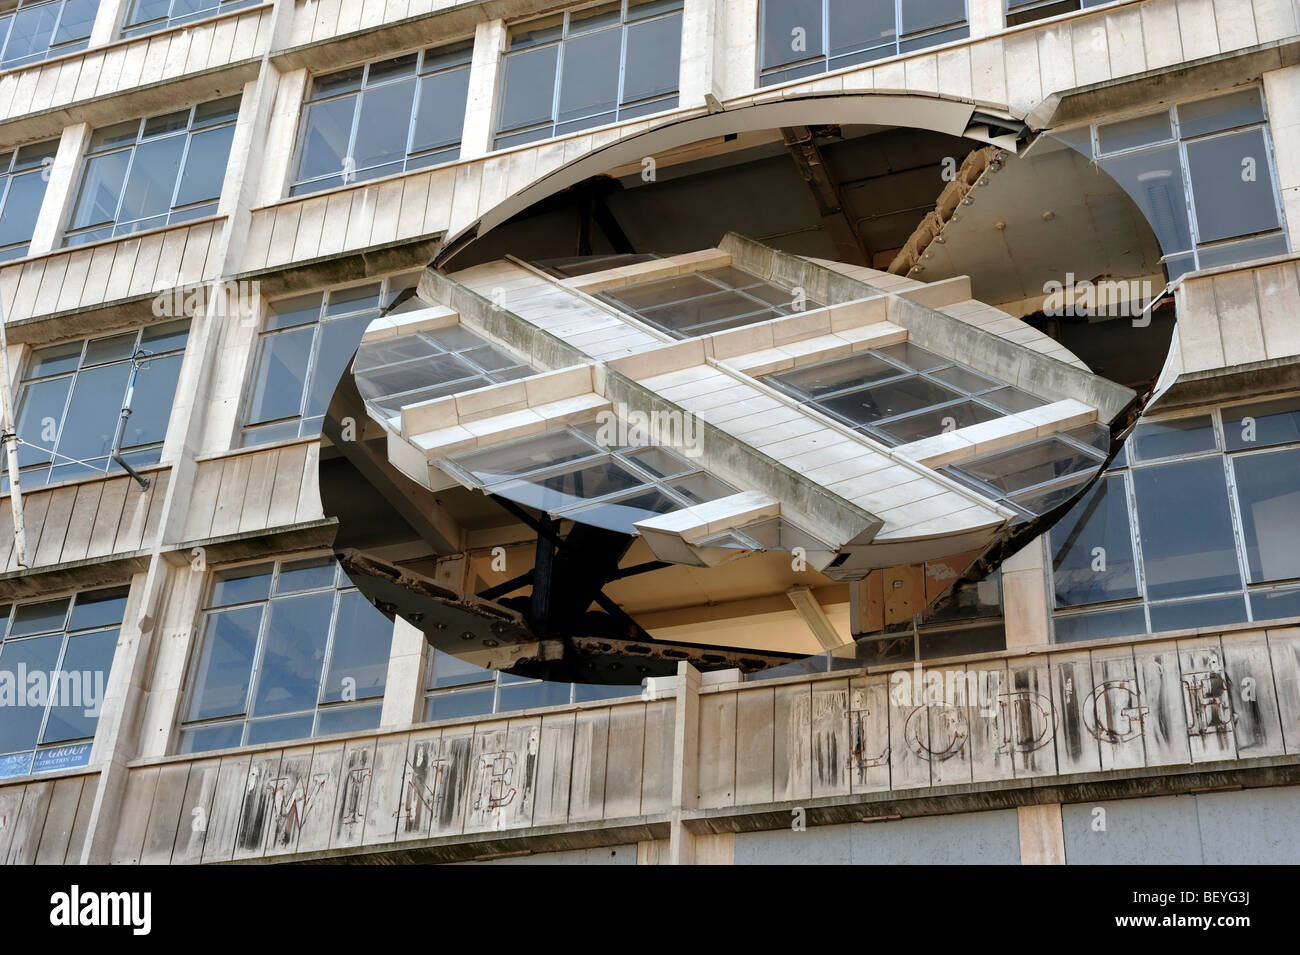 Turning The Place Over sculpture art by Richard Wilson - Stock Image